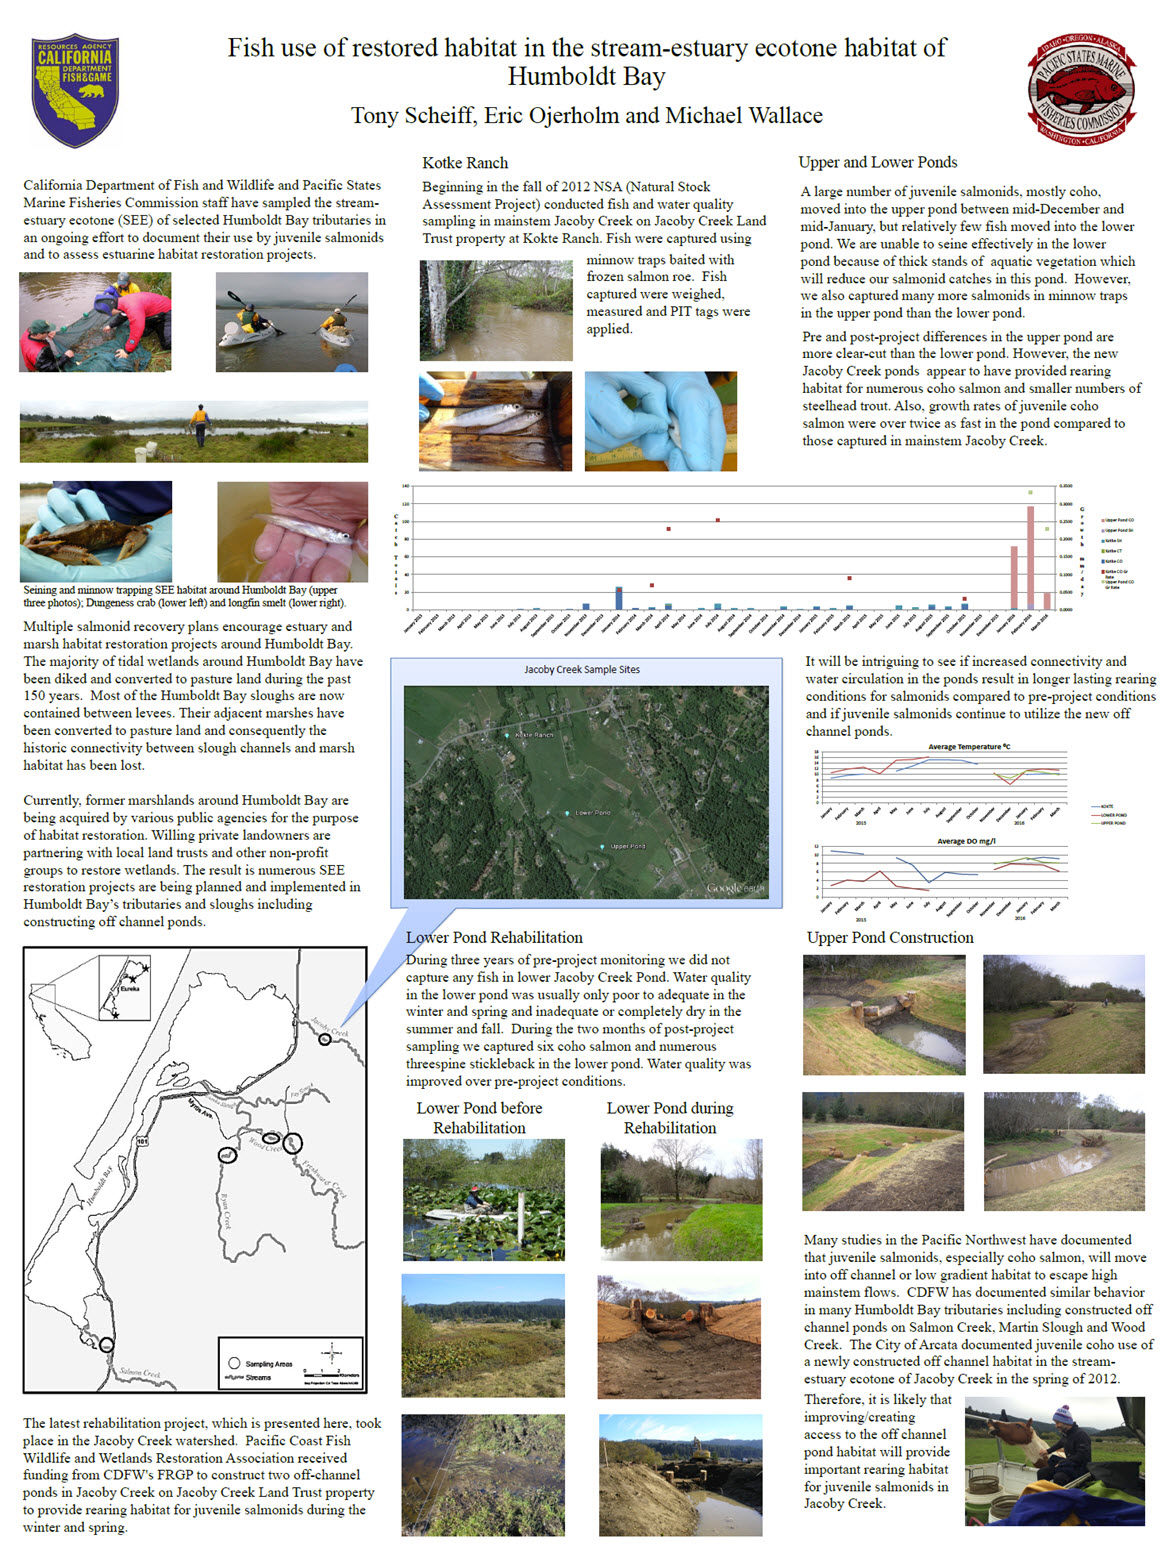 Fish Use of Restored Habitat in the Stream-Estuary Ecotone Habitat of Humboldt Bay